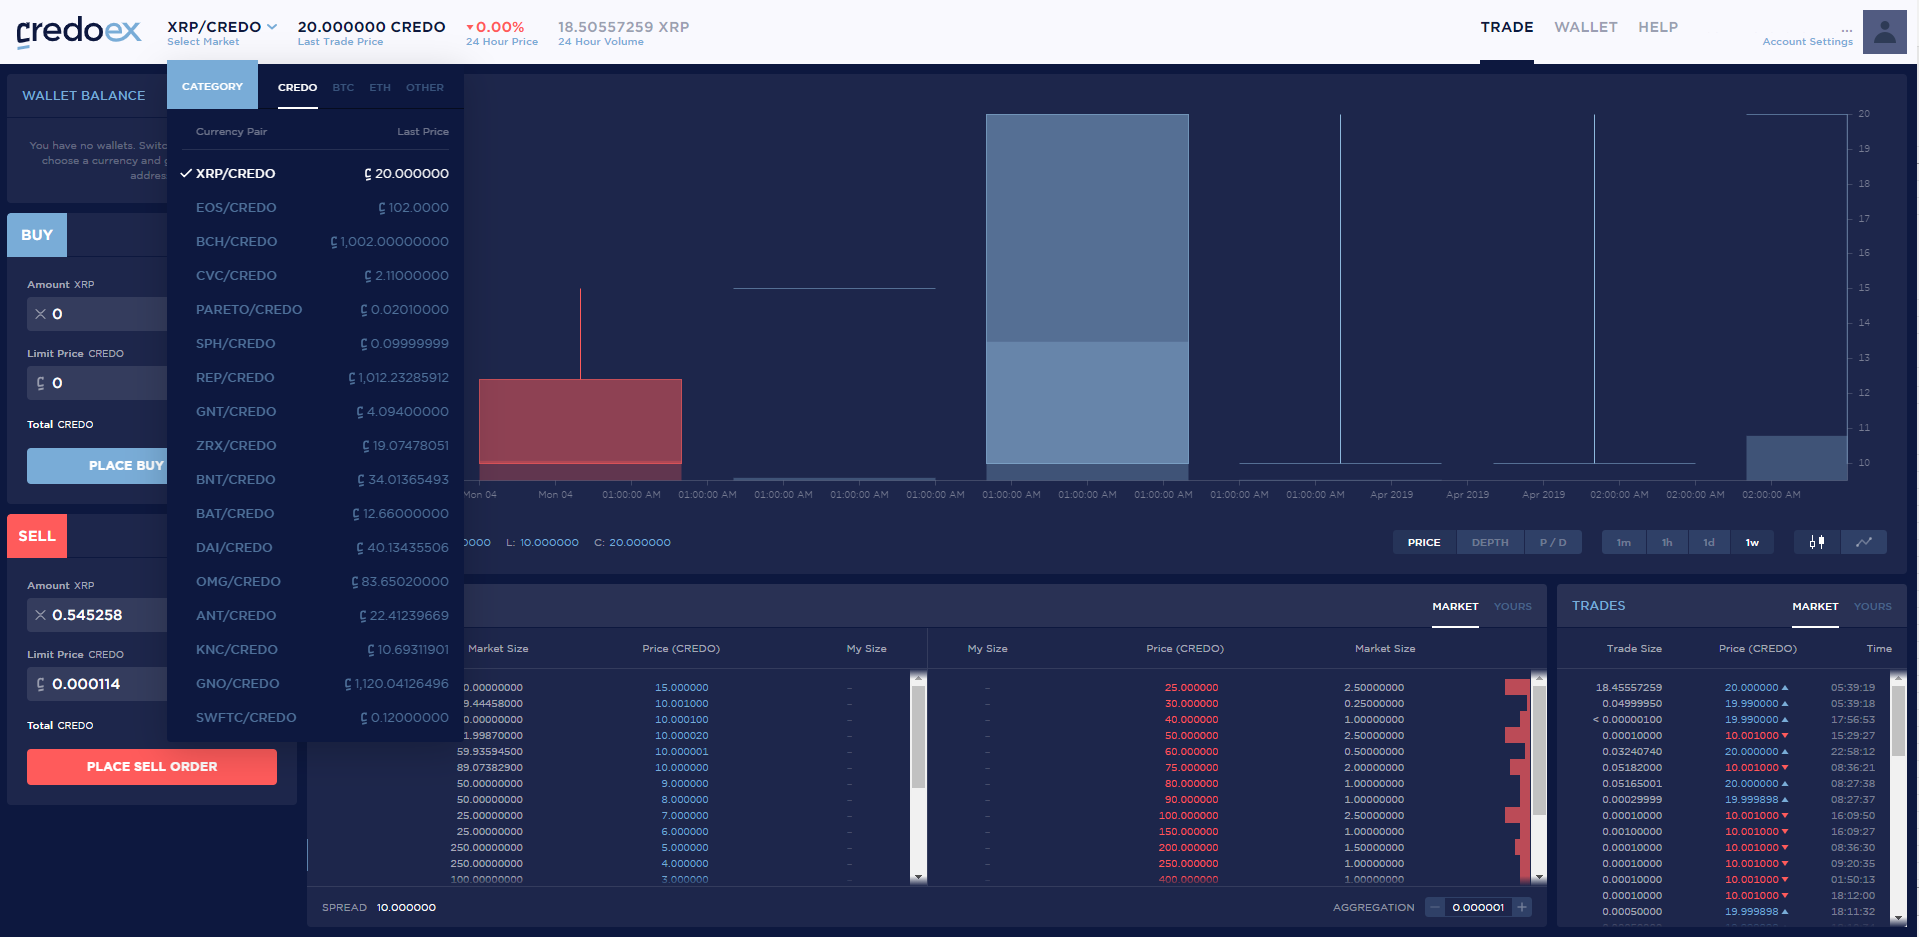 CredoEx Trading View